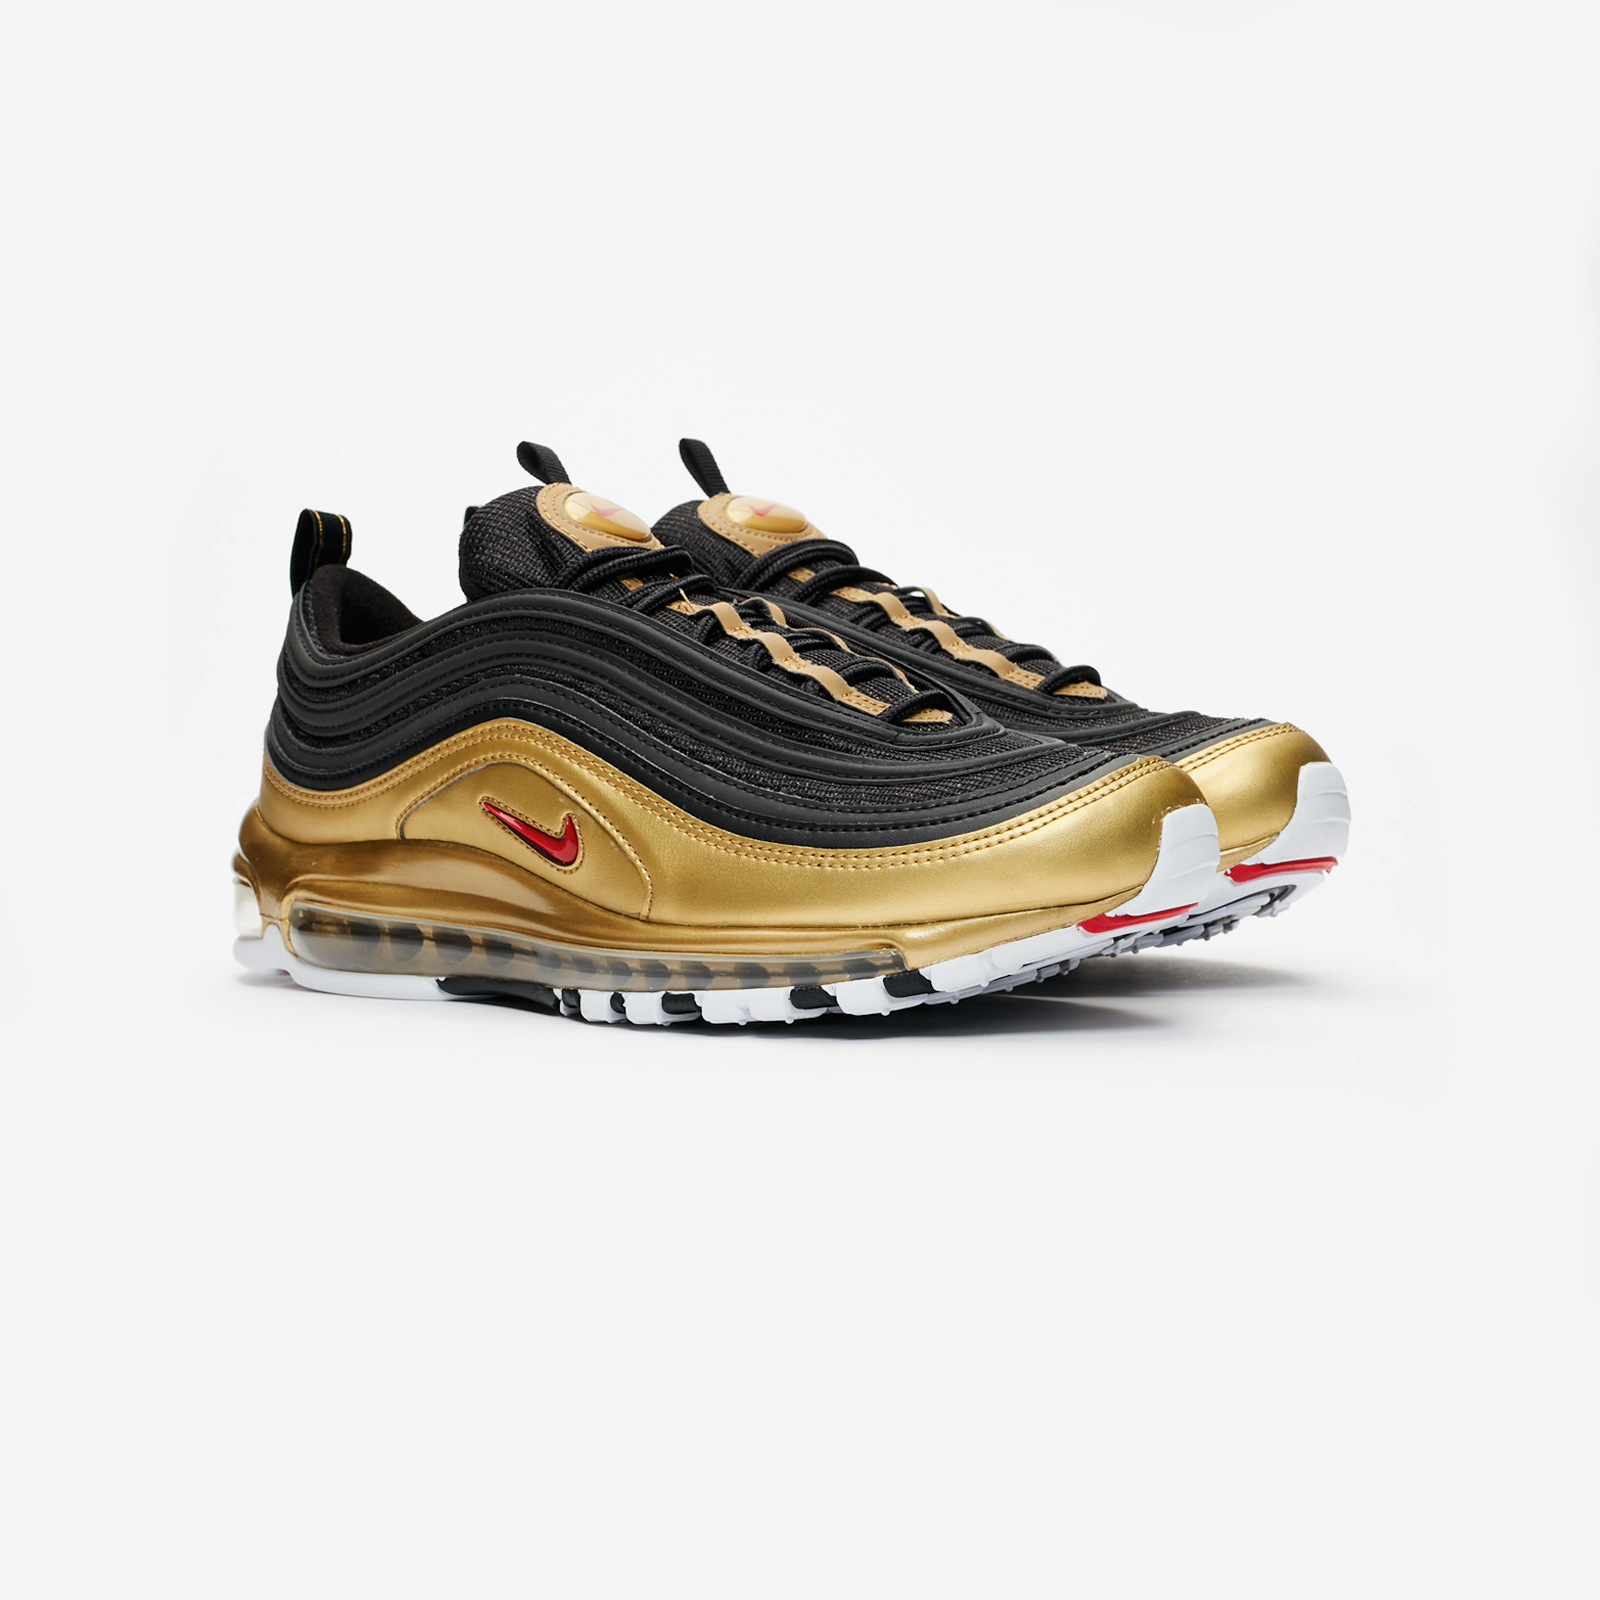 AIR MAX 97 'METALLIC GOLD' BACK TO LIFE WITH JASON MARKK!